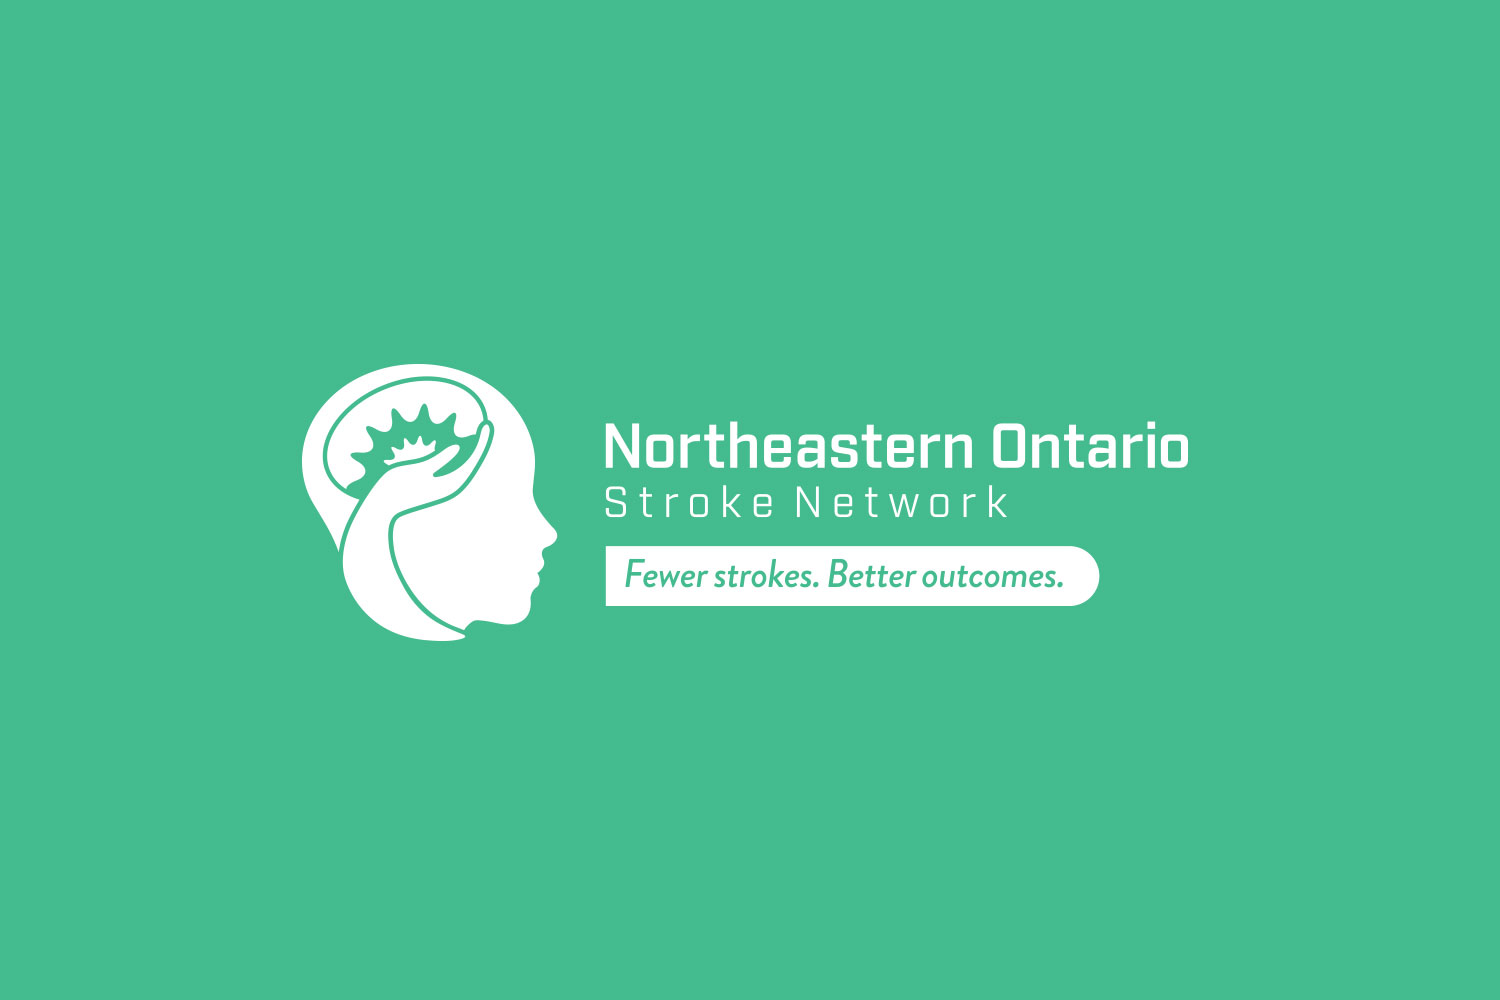 Northeastern Ontario Stroke Network